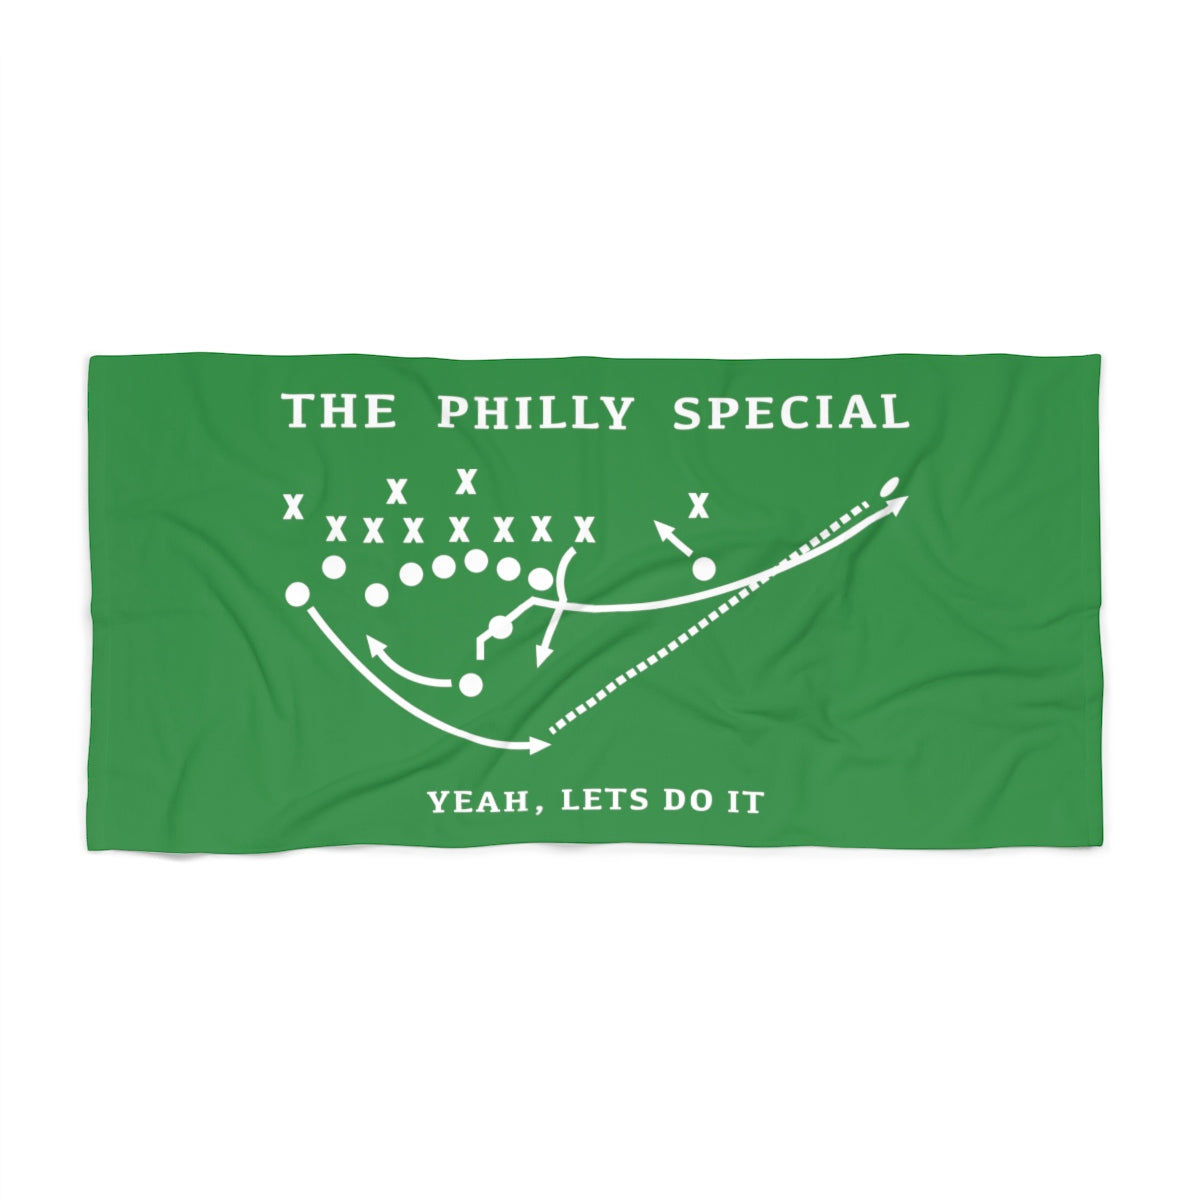 The Philly Special Commemorative Beach Towel